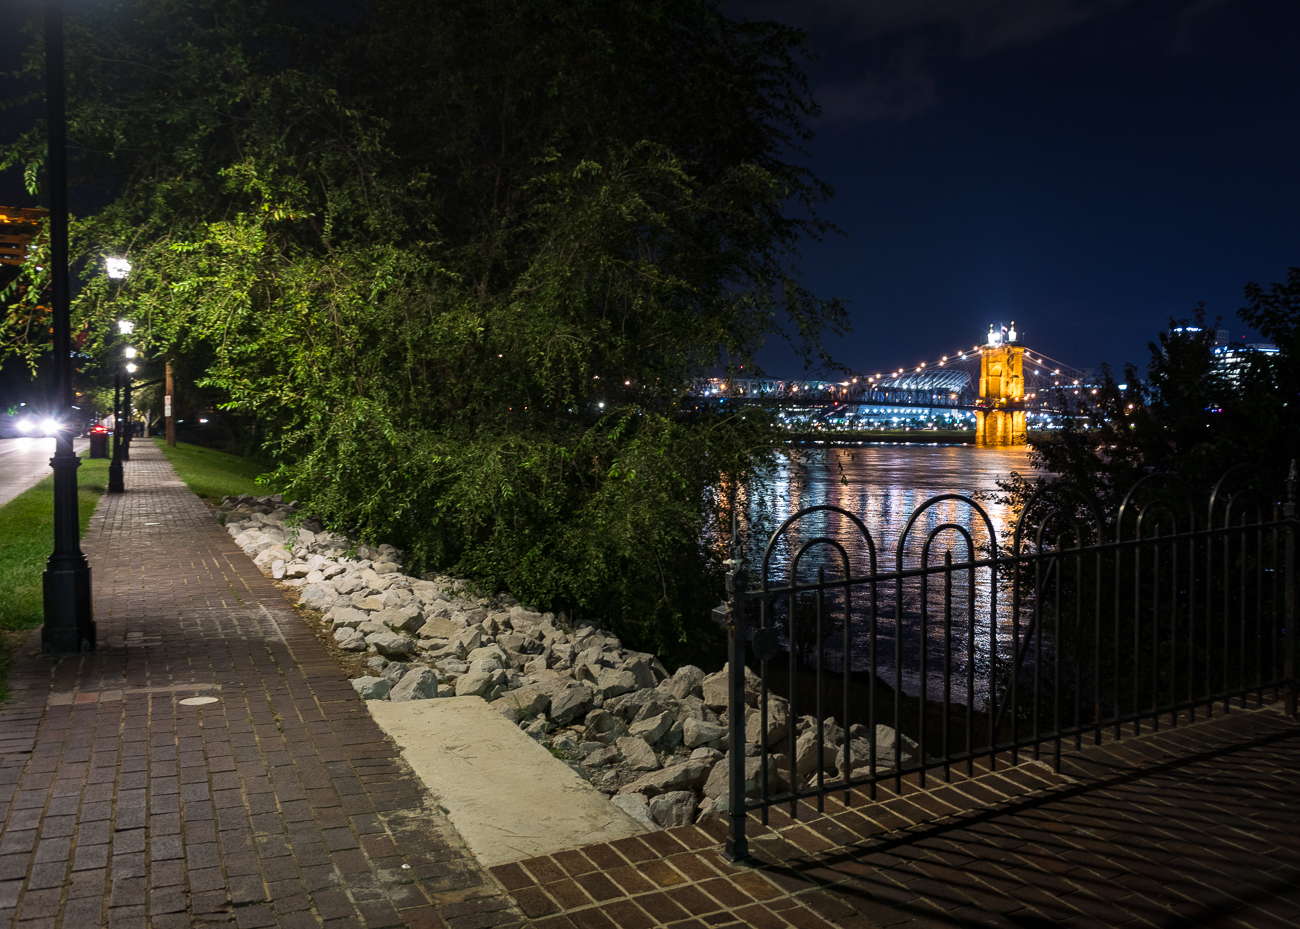 There is perhaps no better time to take an evening walk along Riverside Drive in Covington than now. Between the cooling temperatures that haven't yet shaken the leaves from the trees and the temporary SkyStar Ferris wheel across the river that's lighting up Smale Park, the next few weeks will offer peak comfort and beautiful views for anyone who visits. / Image: Phil Armstrong, Cincinnati Refined // Published: 9.24.18{ }